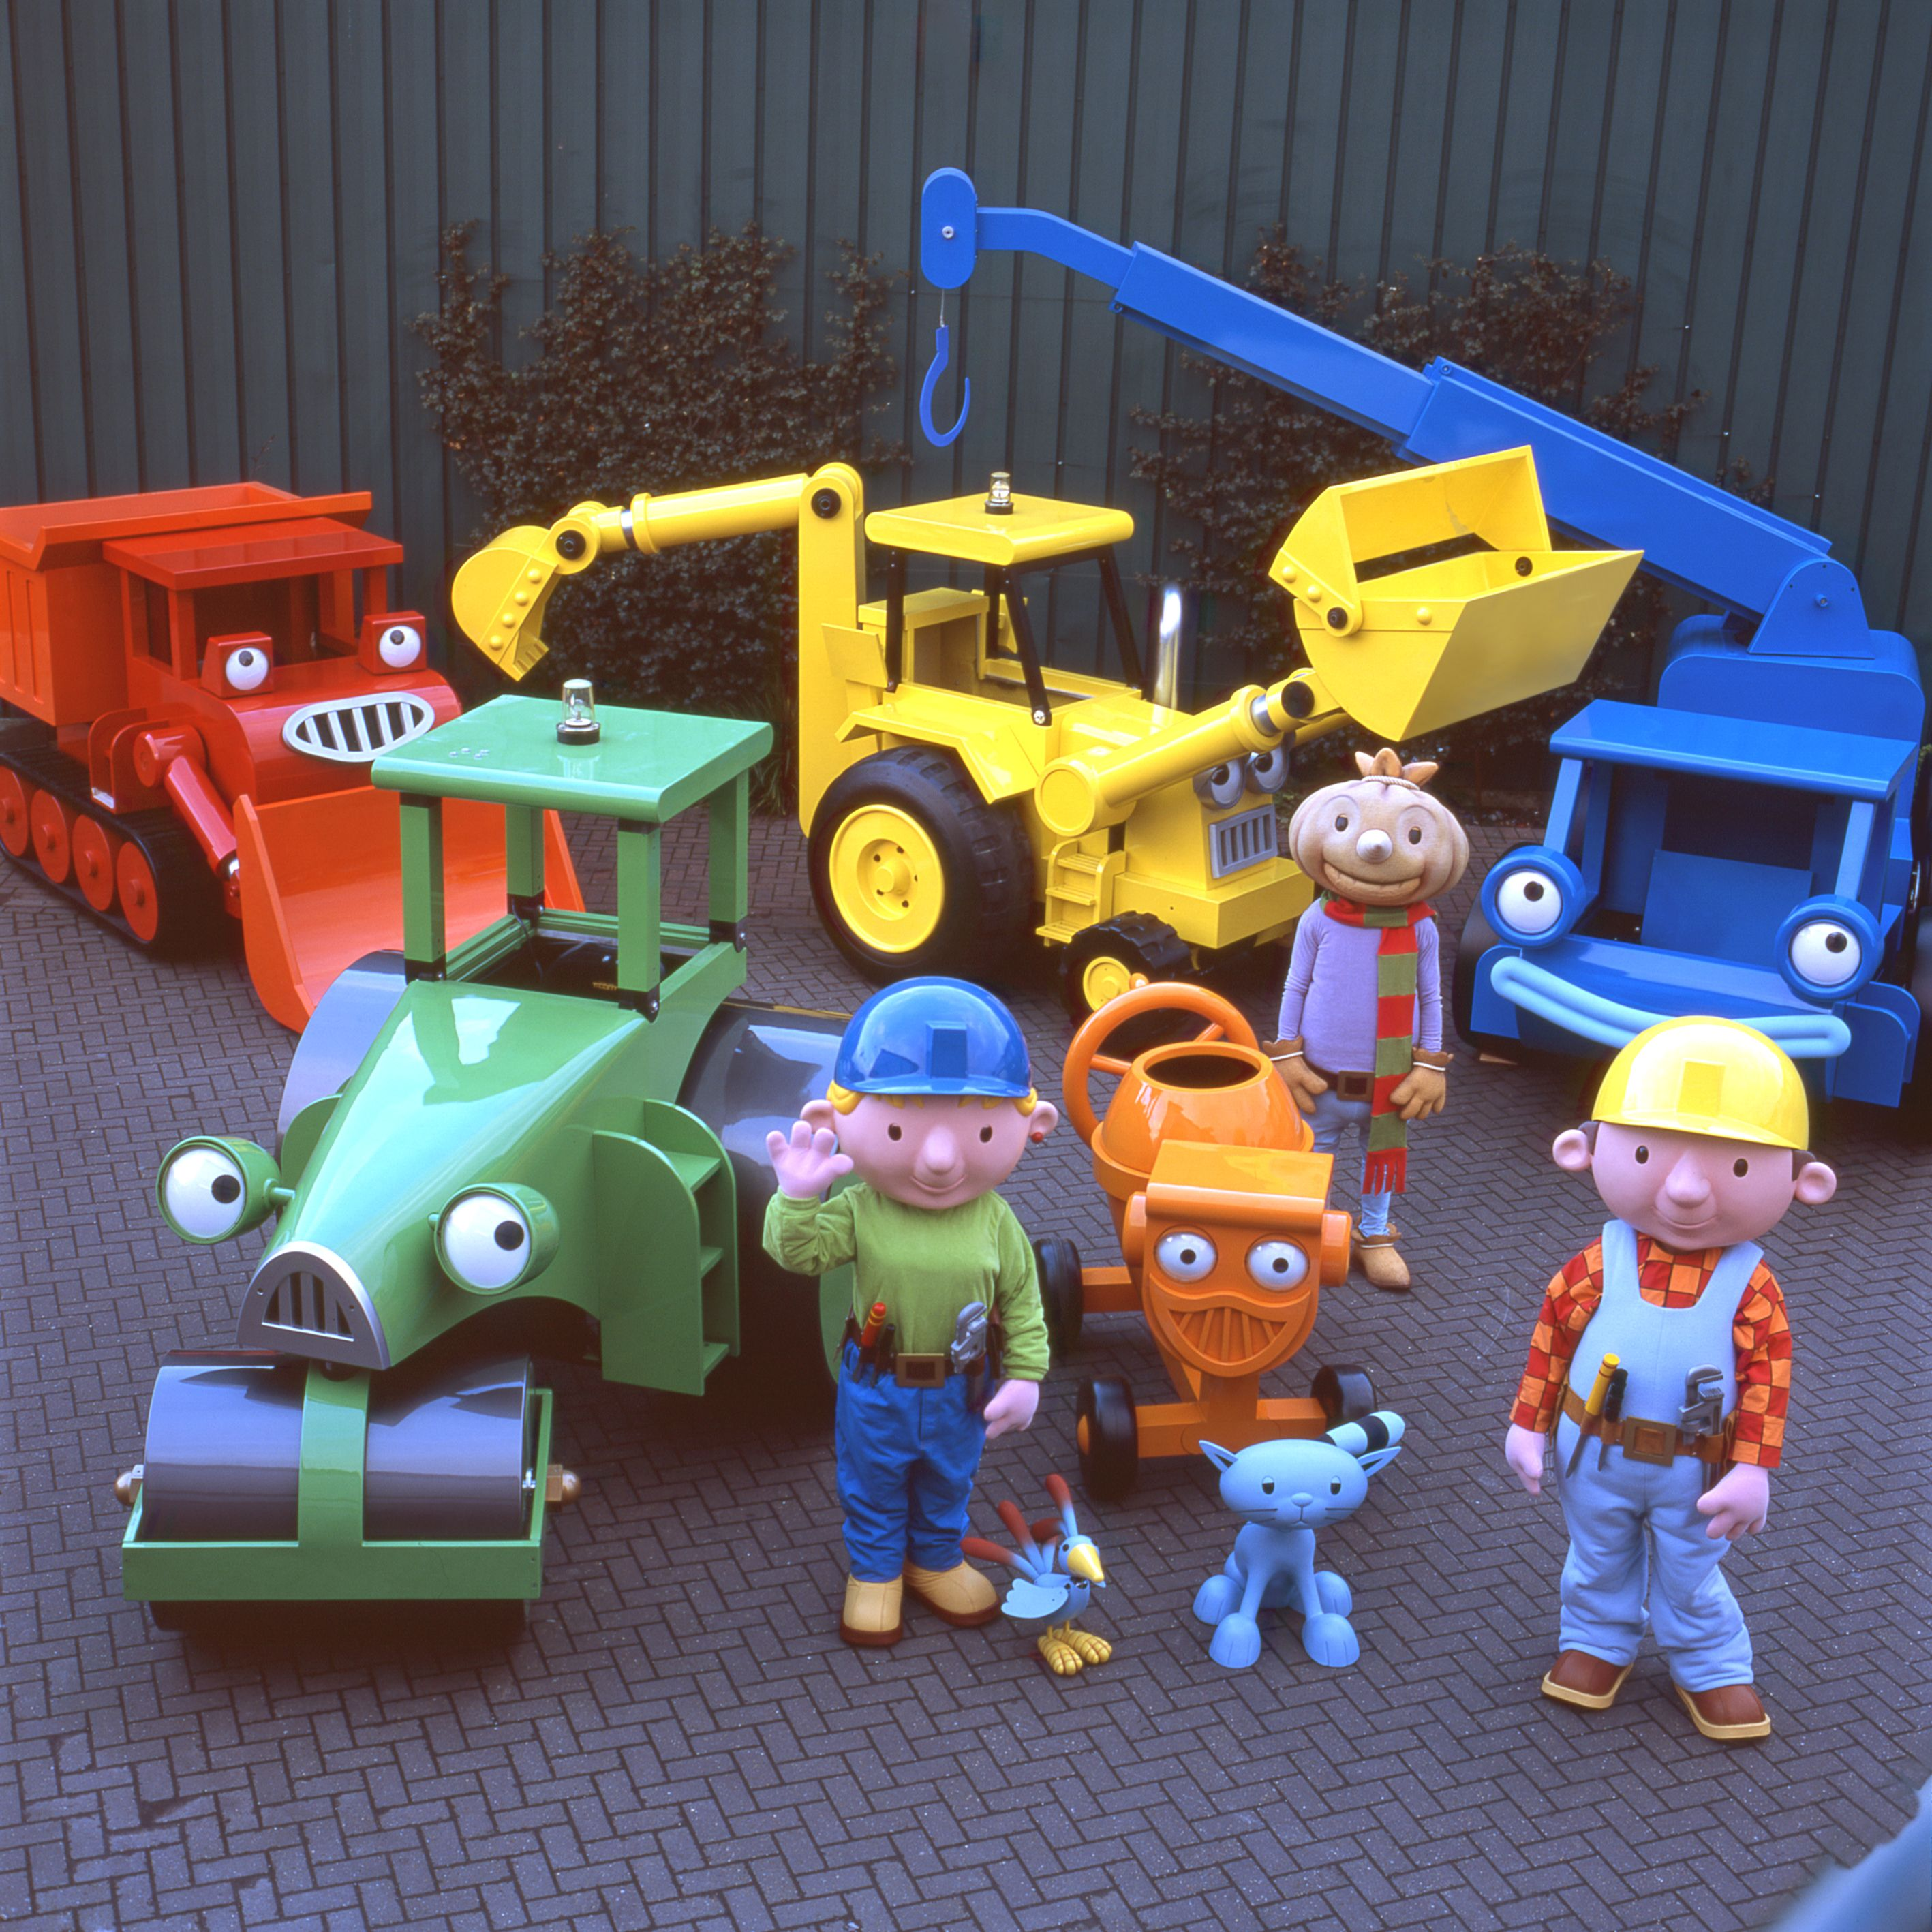 Vehicles and costumes for Bob the Builder Live